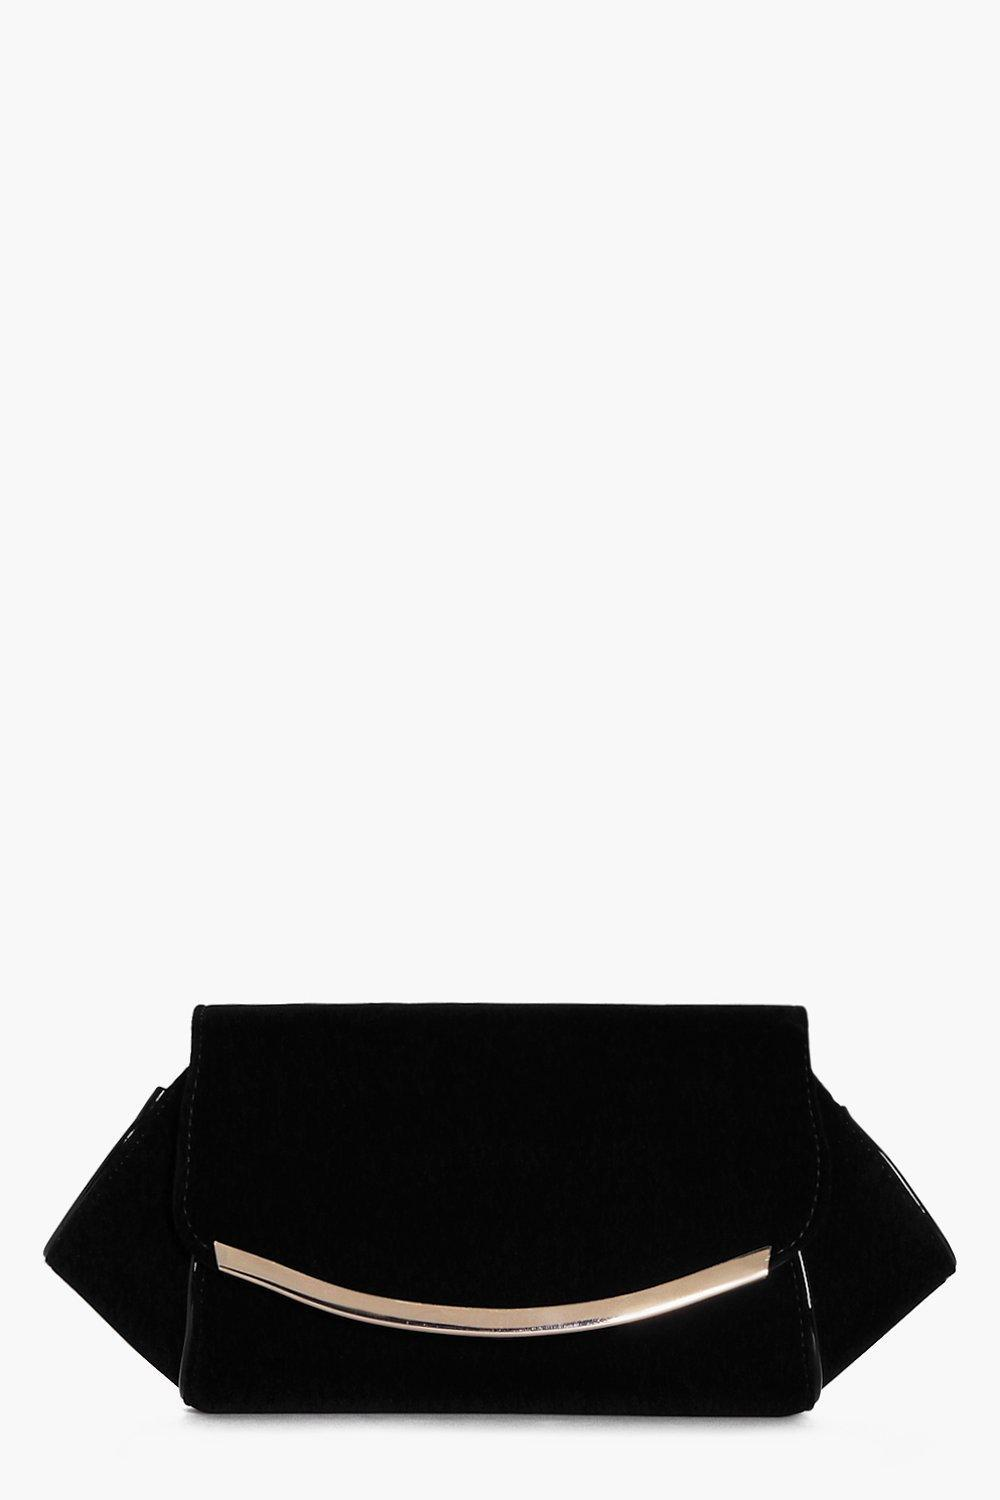 Winged Metal Detail Velvet Clutch Black - predominant colour: black; occasions: evening, occasion; type of pattern: small; style: clutch; length: hand carry; size: small; material: velvet; pattern: plain; finish: plain; season: a/w 2016; wardrobe: event; trends: velvet